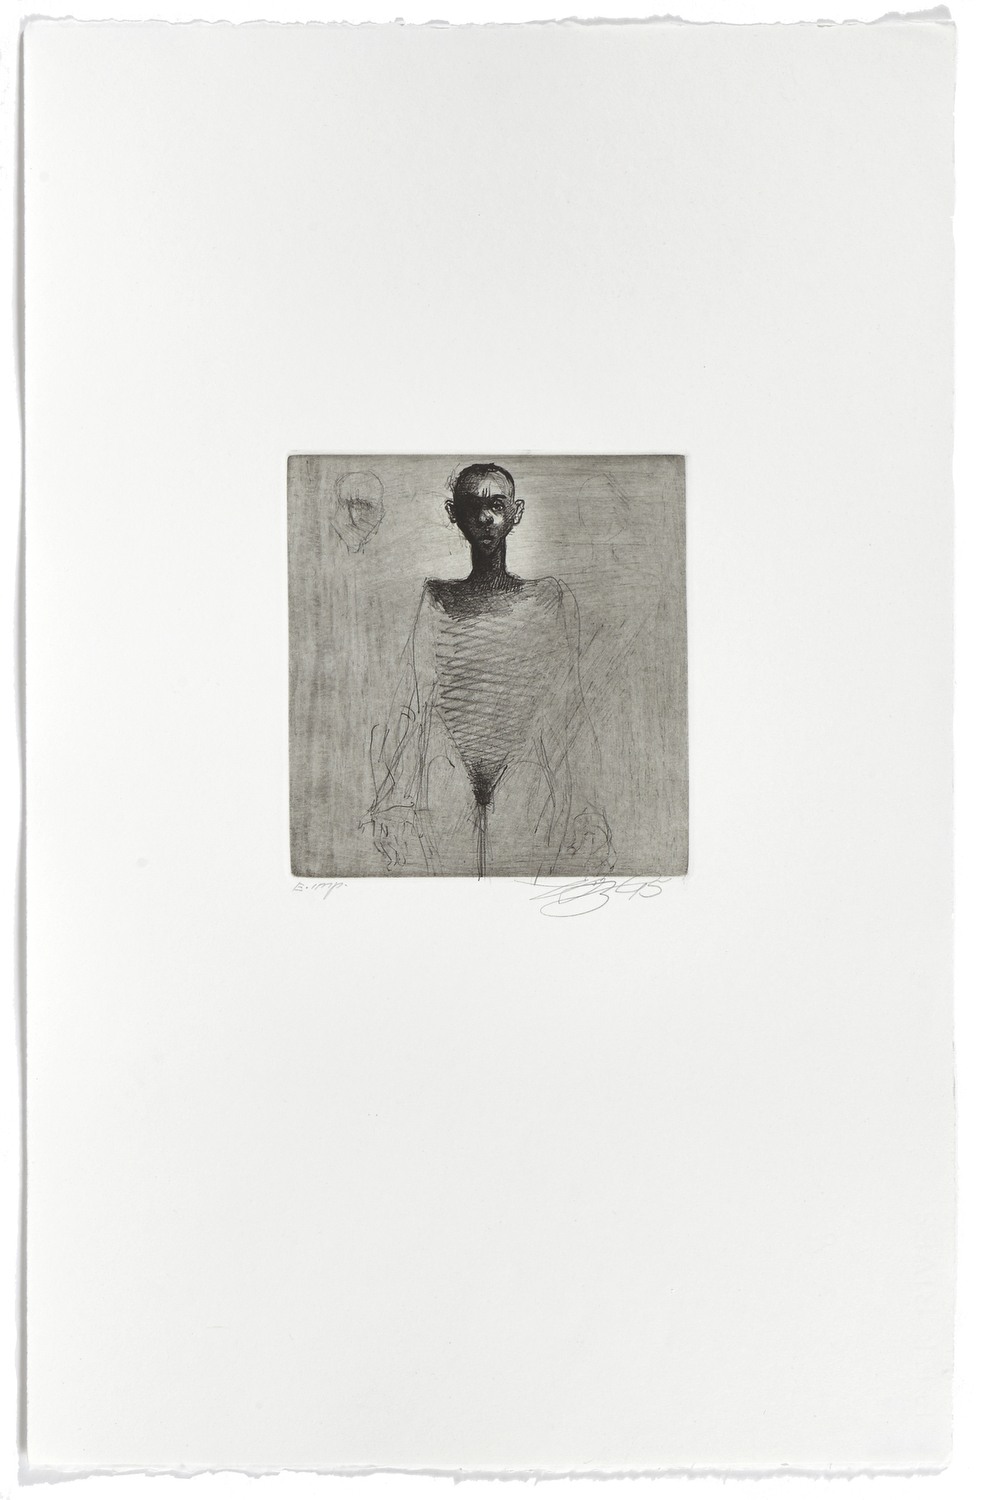 Untitled 1    1995 | 66 x 42 cm | Lithography | 4 prints